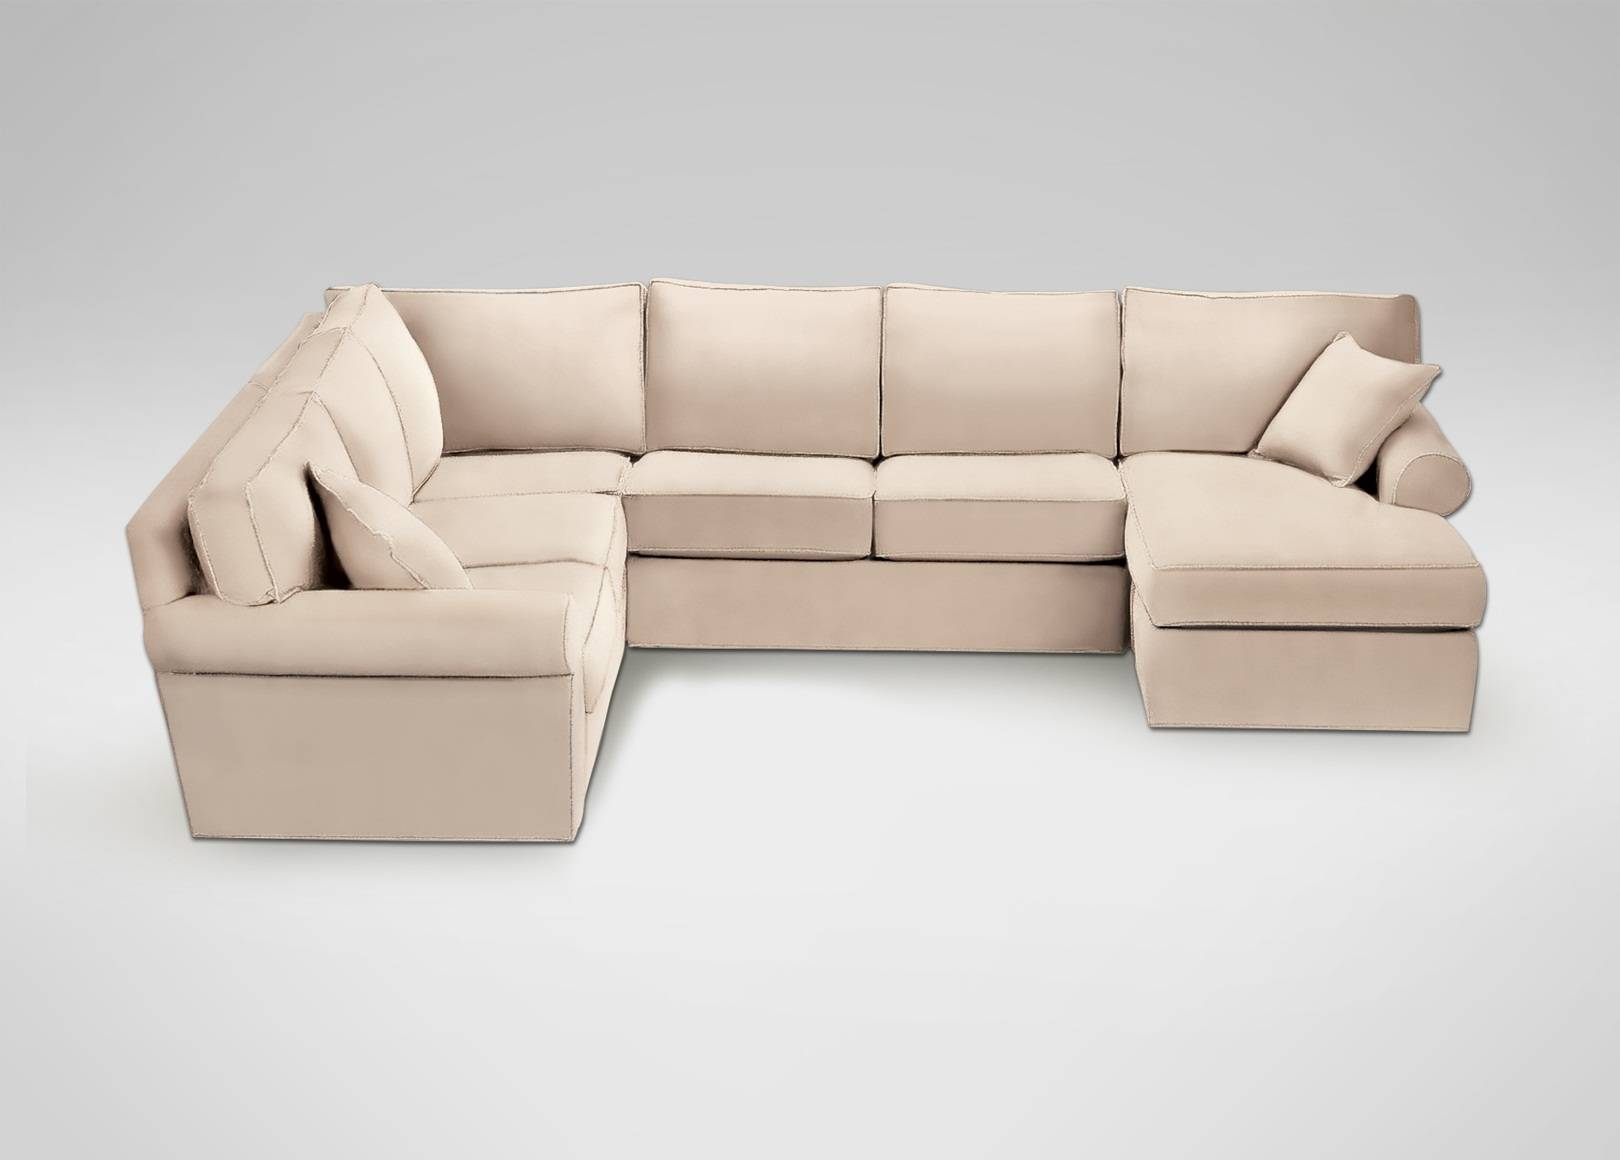 Cool Ethan Allen Sectional Sofas | Twuzzer With Regard To Ethan Allen Sectional Sofas (View 7 of 15)